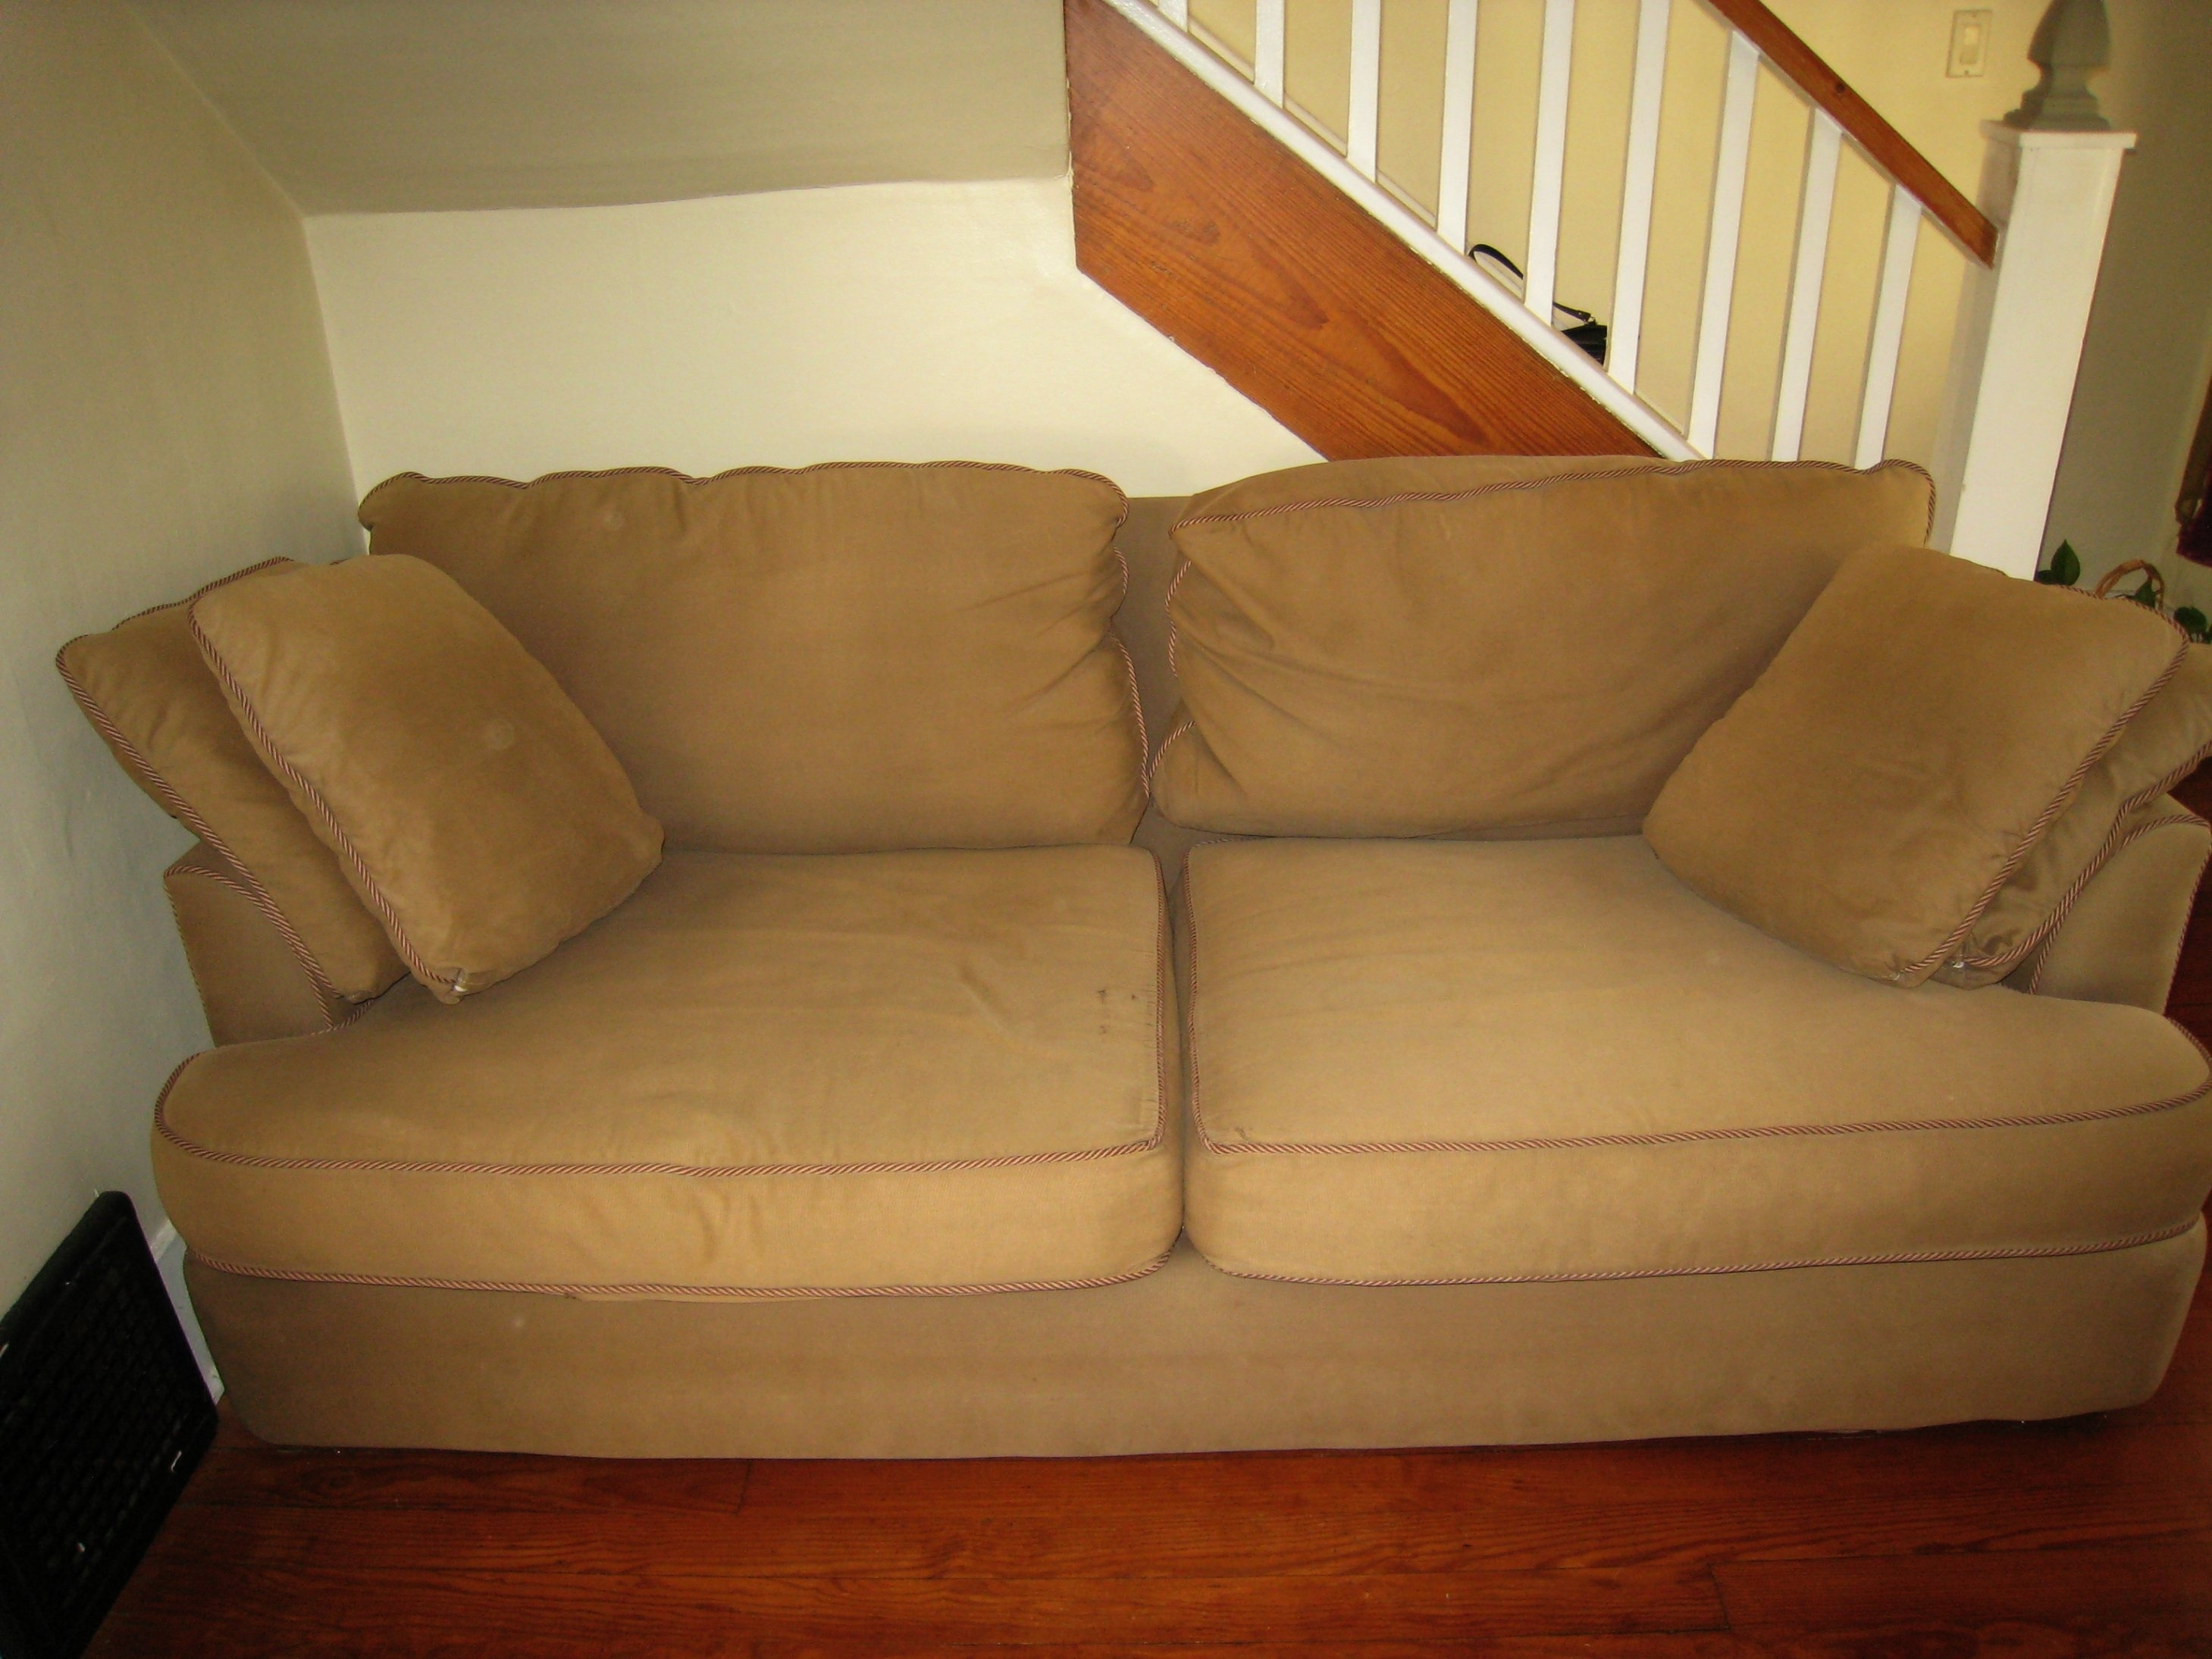 Deep Cushioned Sofas | Sristicabletv inside Deep Cushion Sofas (Image 5 of 10)